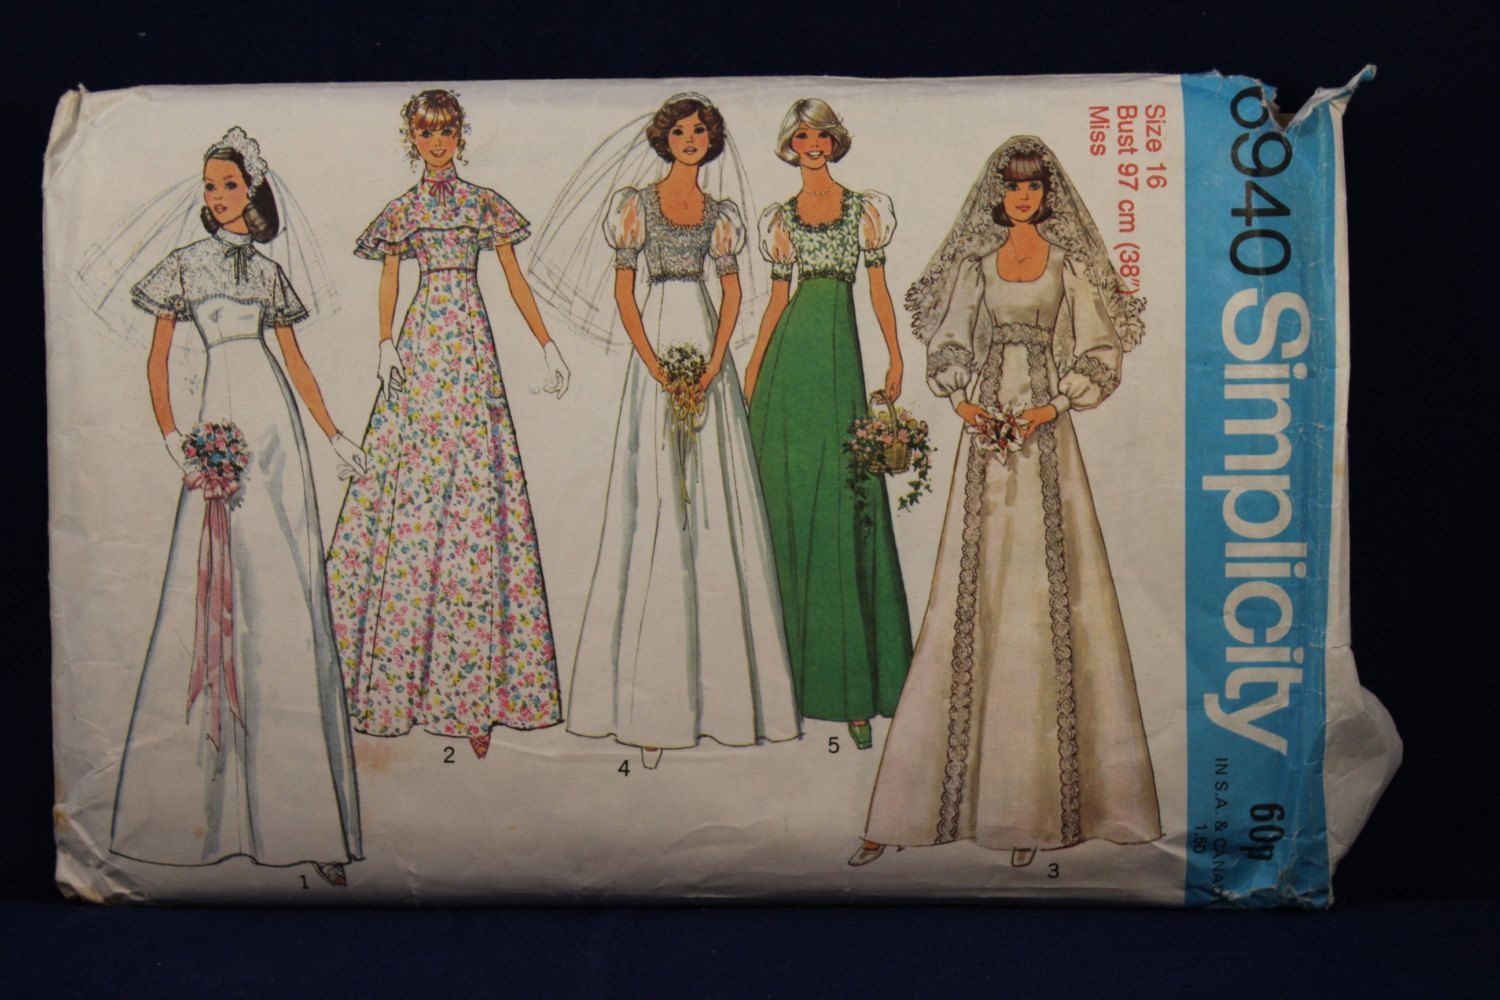 Sewing Pattern Simplicity 6940 for a Woman's 1970's